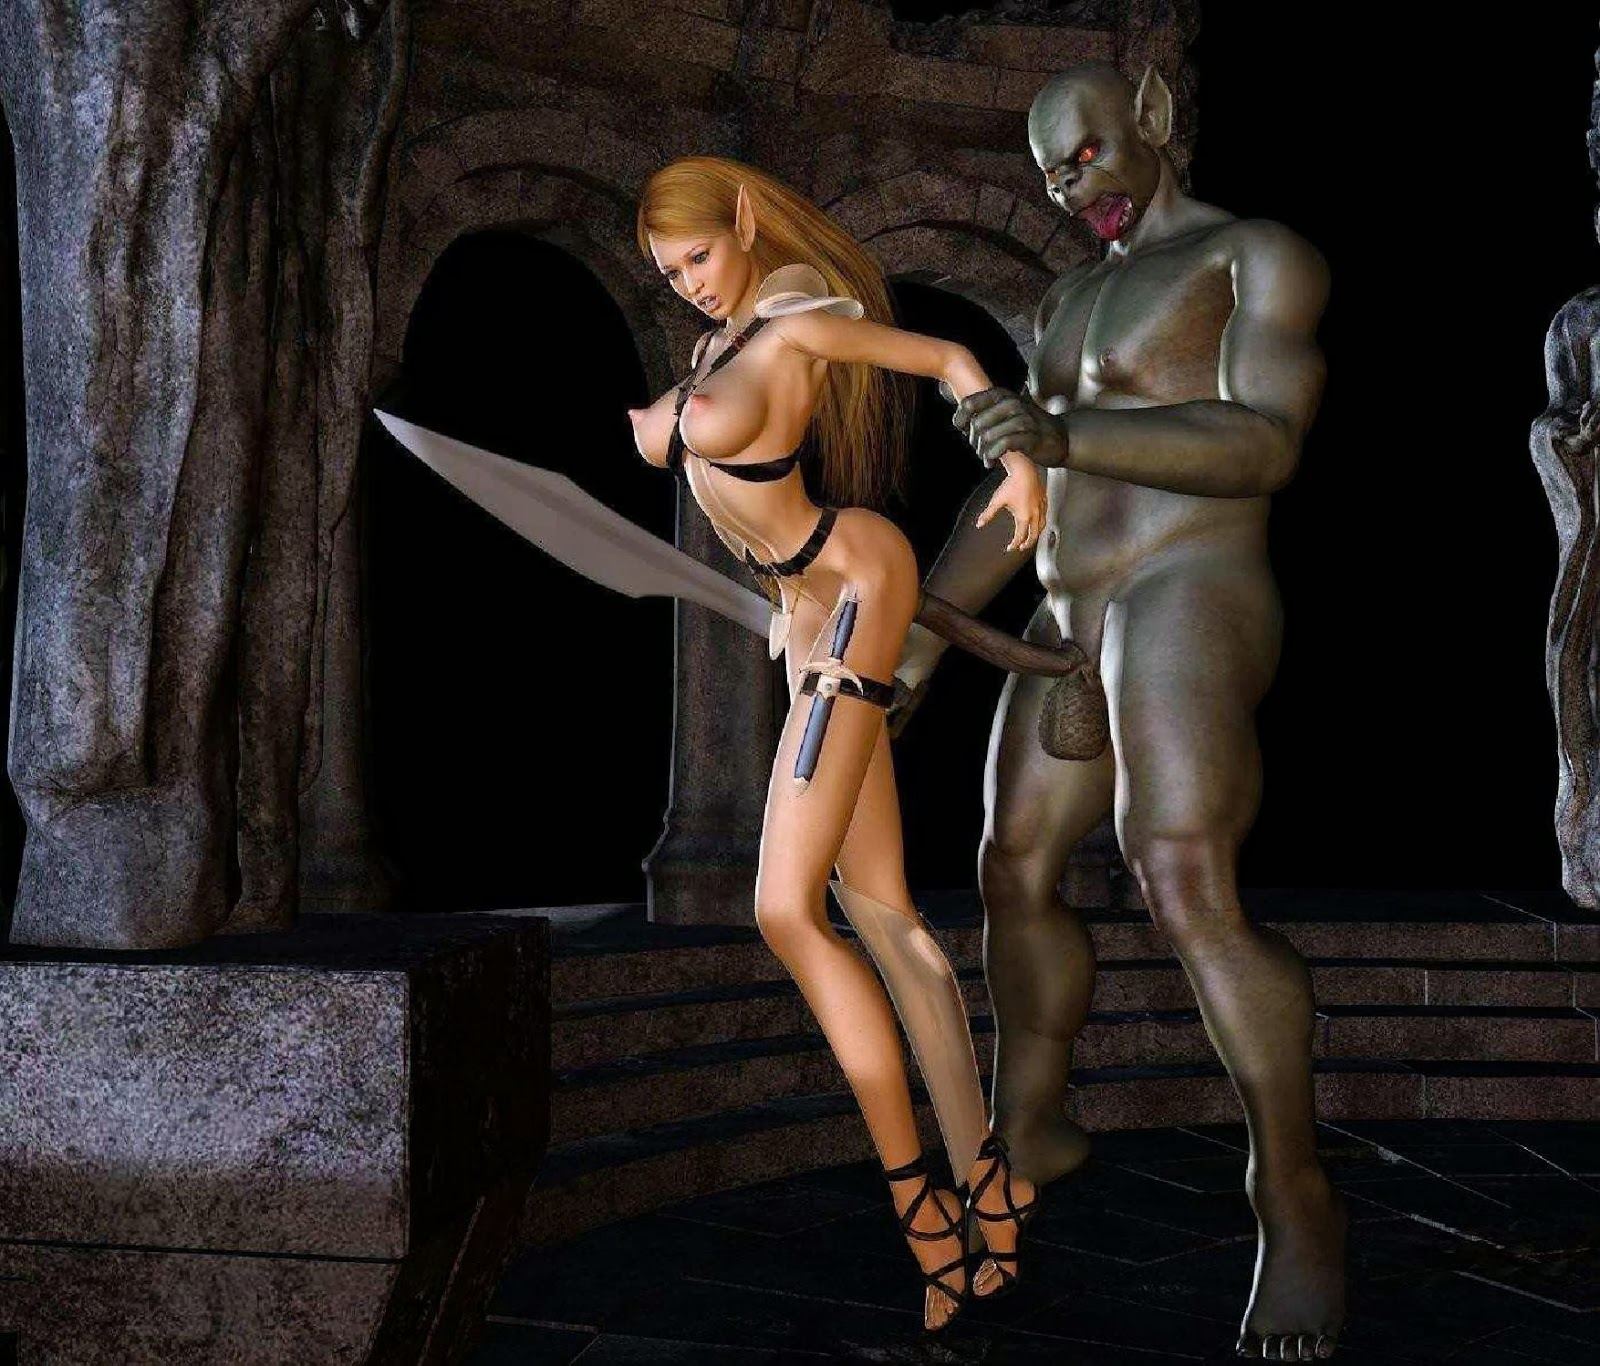 Drow ranger pron sex adult video